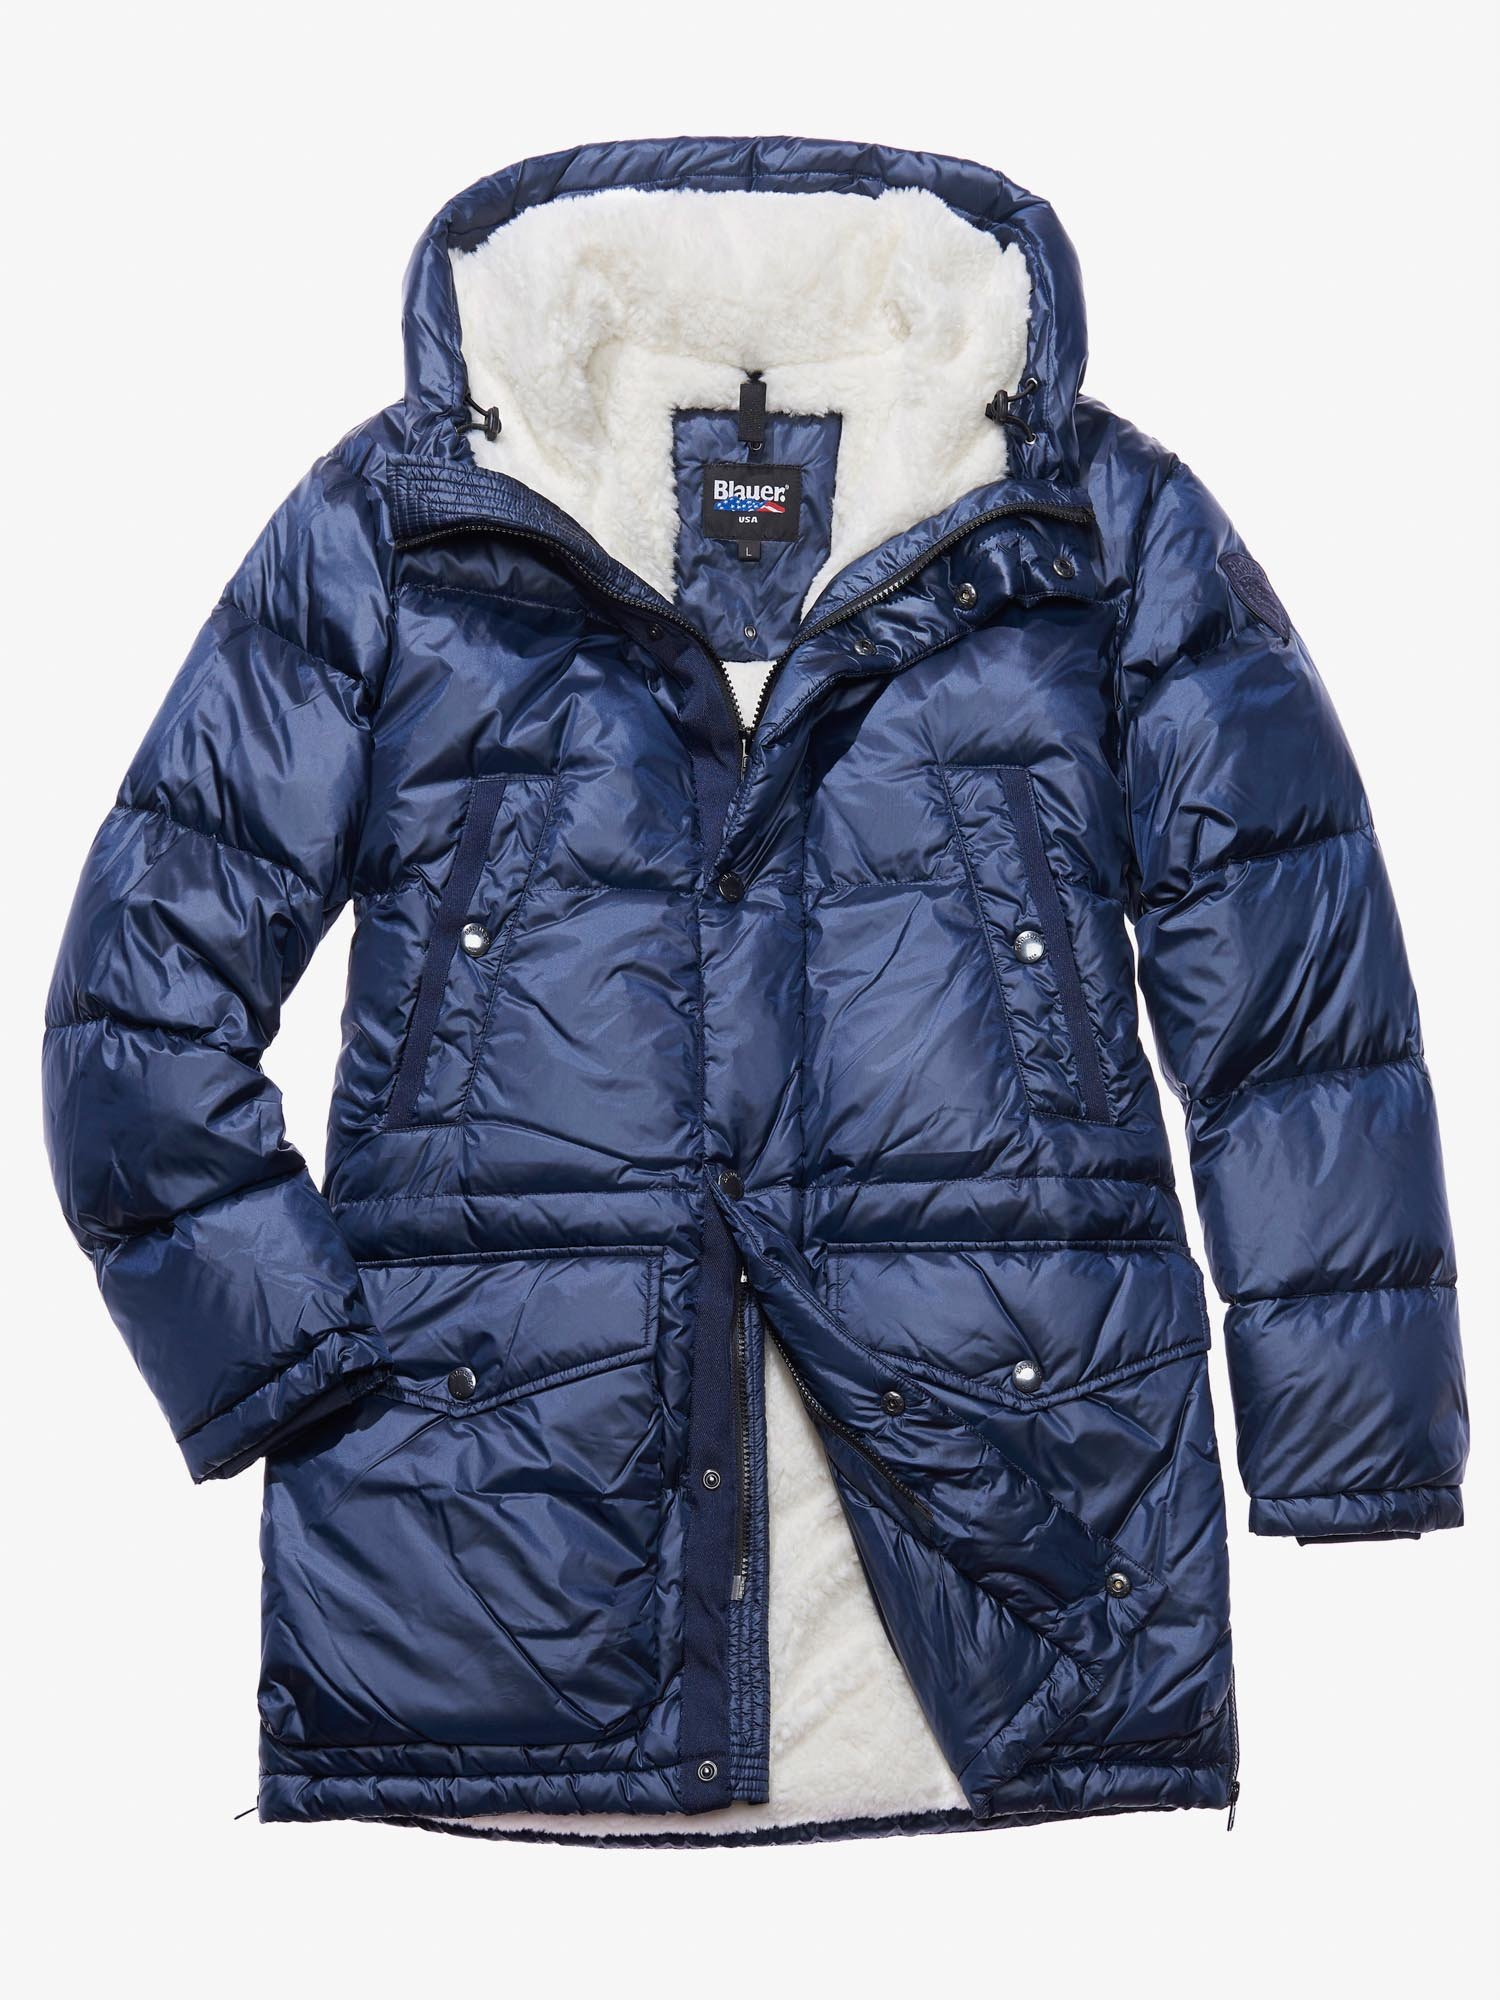 Blauer - LEONARDO DOWN COAT WITH FAUX FUR LINING - blue - Blauer